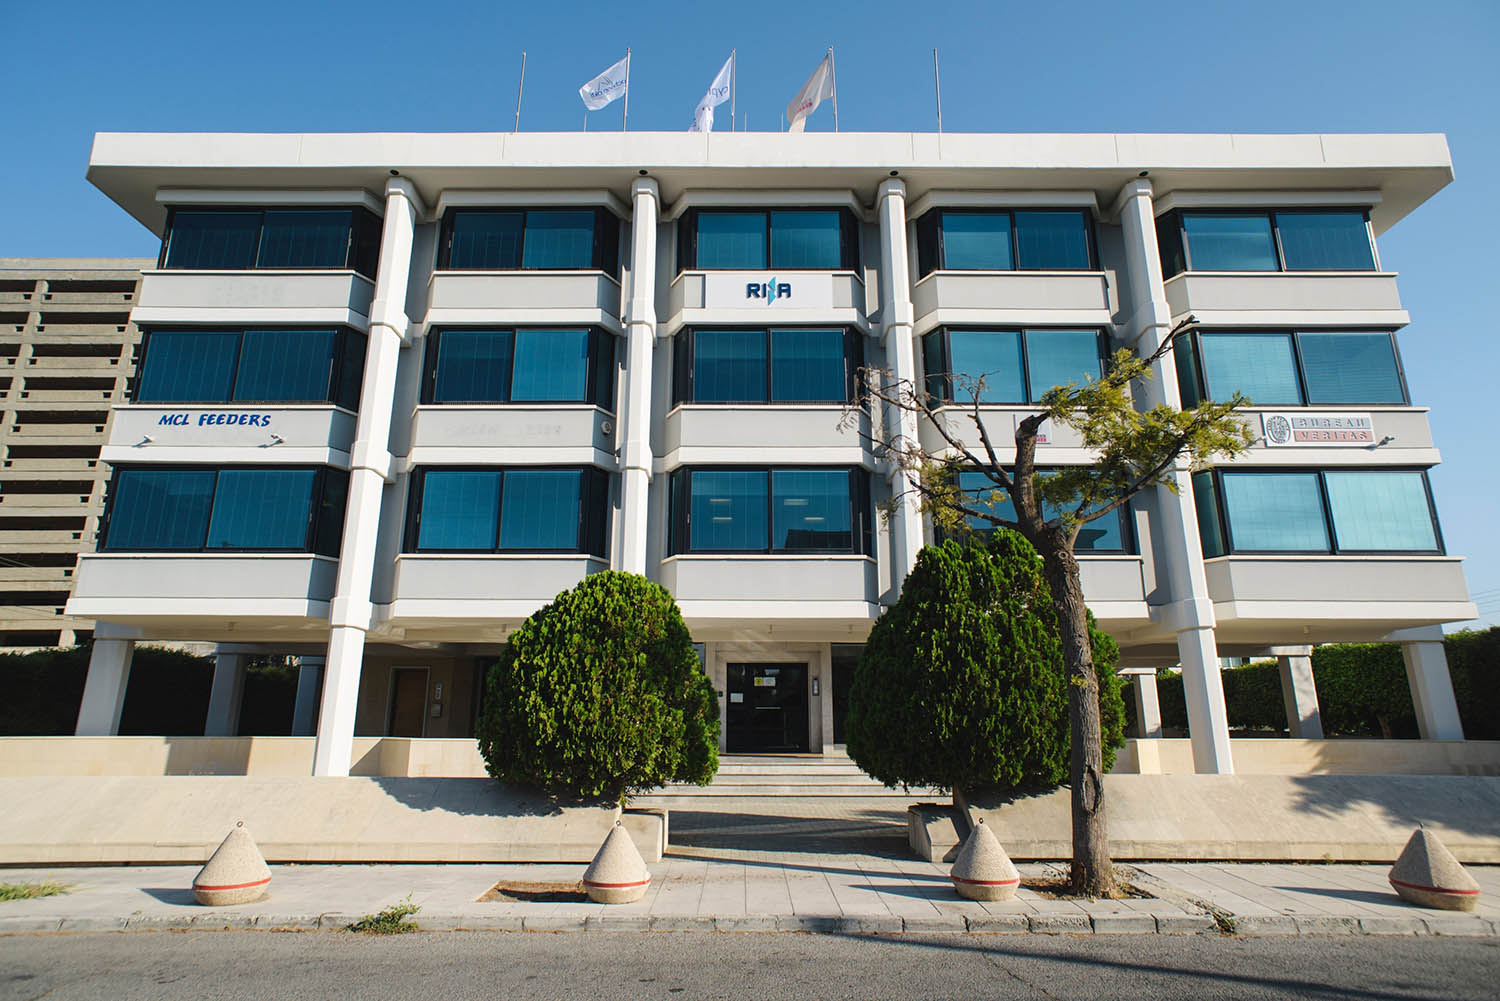 The headquarters of Charalambos Manoli's ship management company, Acheon Akti, in Limassol, Cyprus. Credit: OCCRP